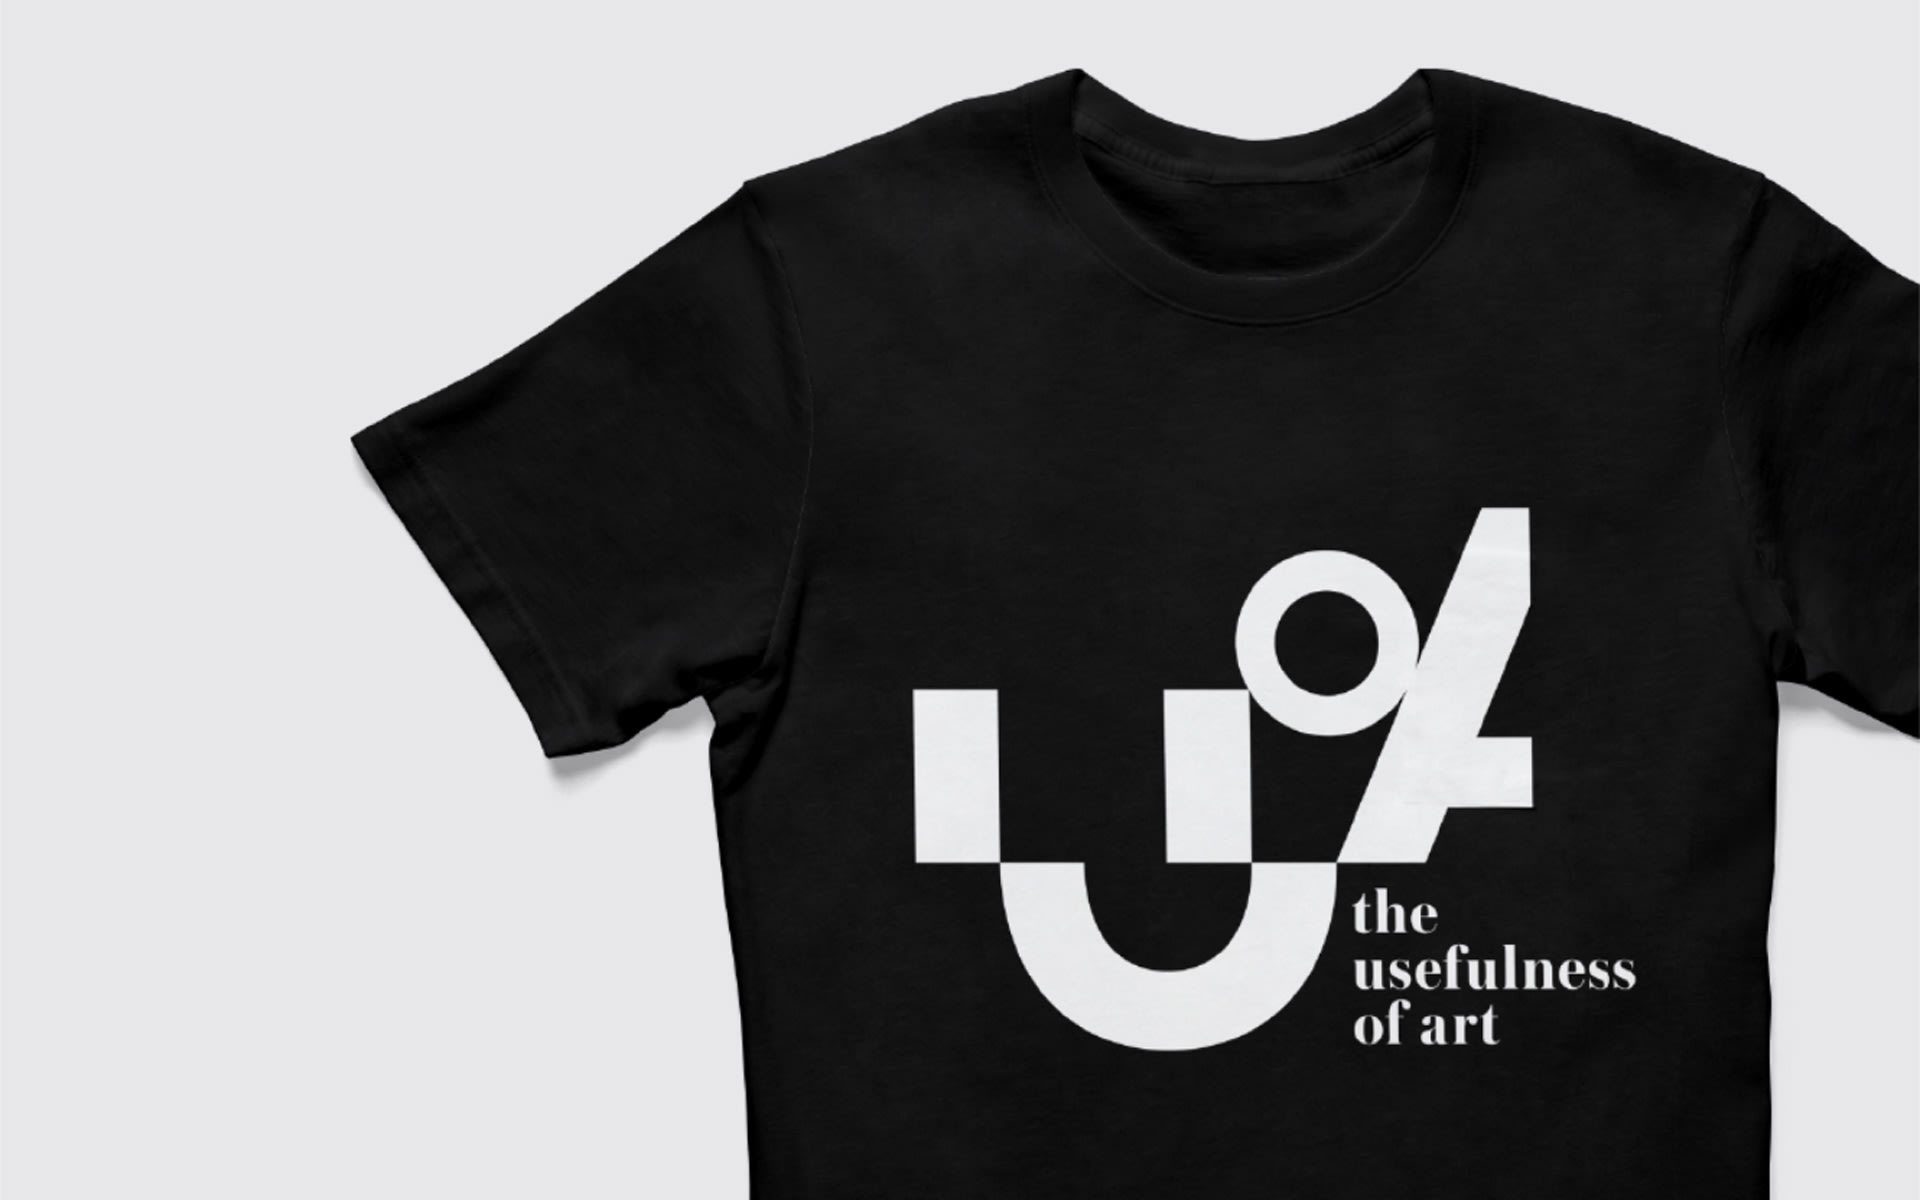 the-usefulness-of-art-apparel-design